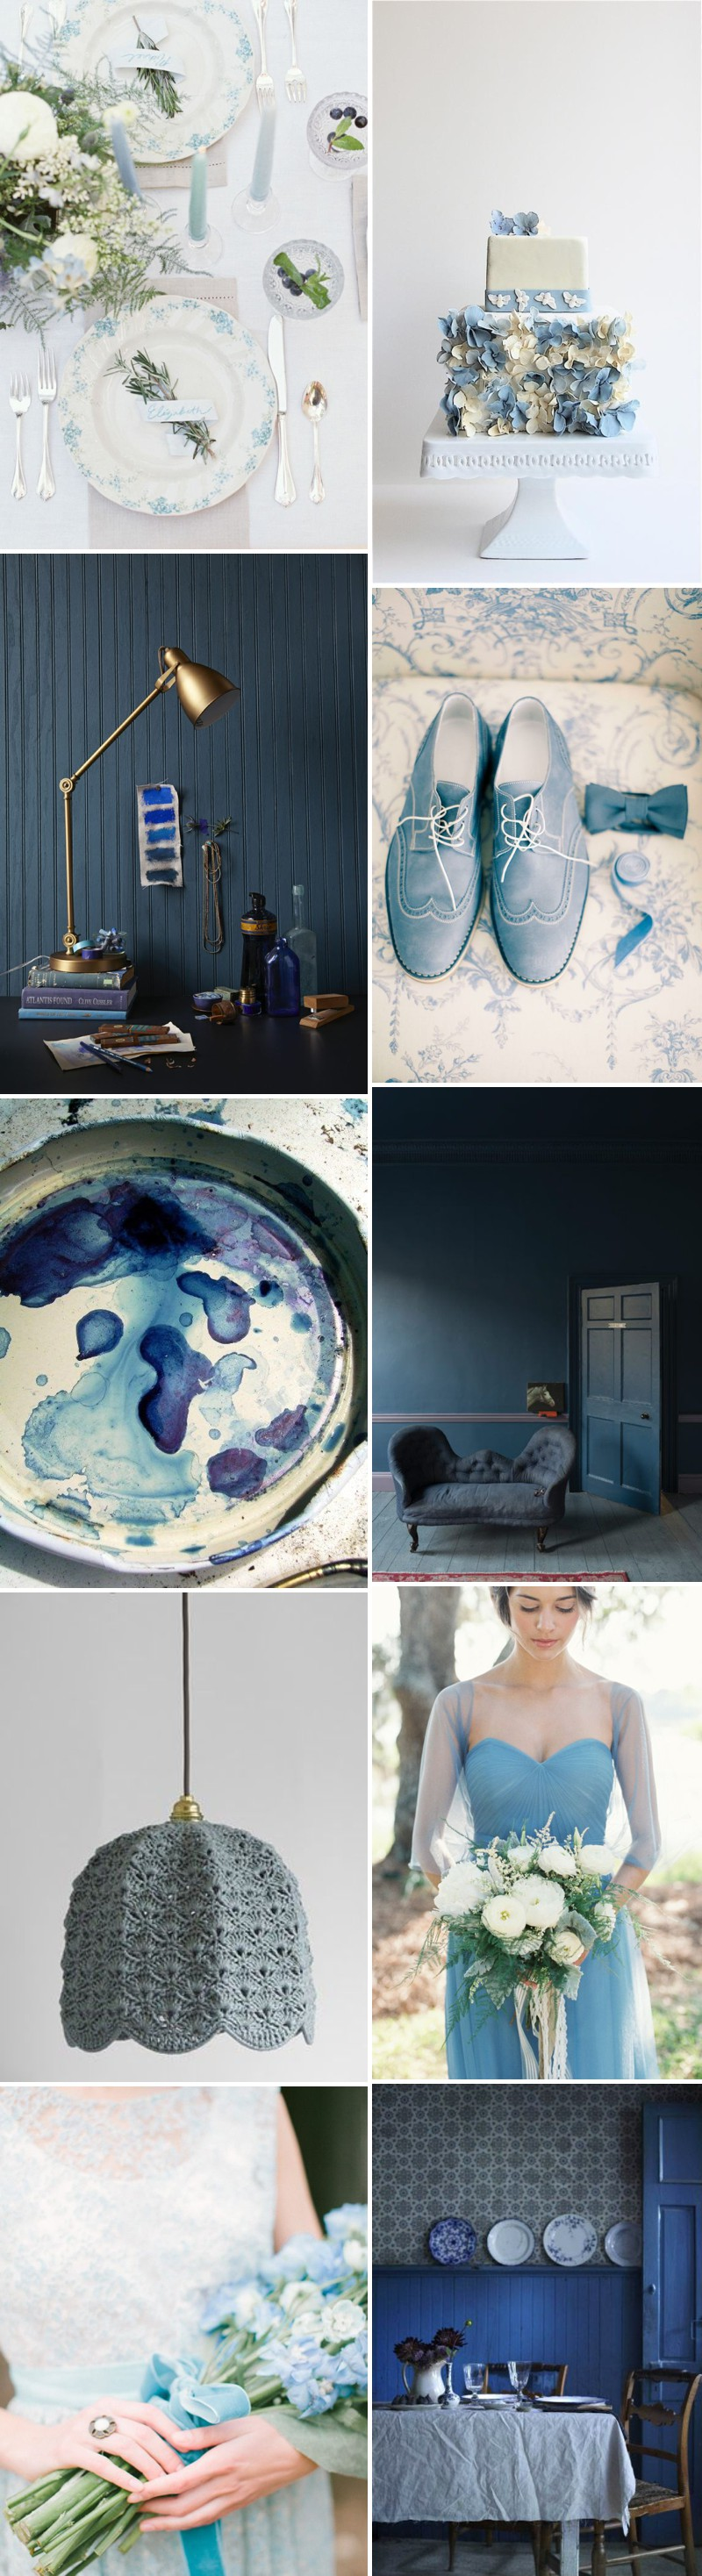 An Inspiration Mood Board For A Blue Colour Scheme Themed Wedding. 0001 Hues Of Blue.